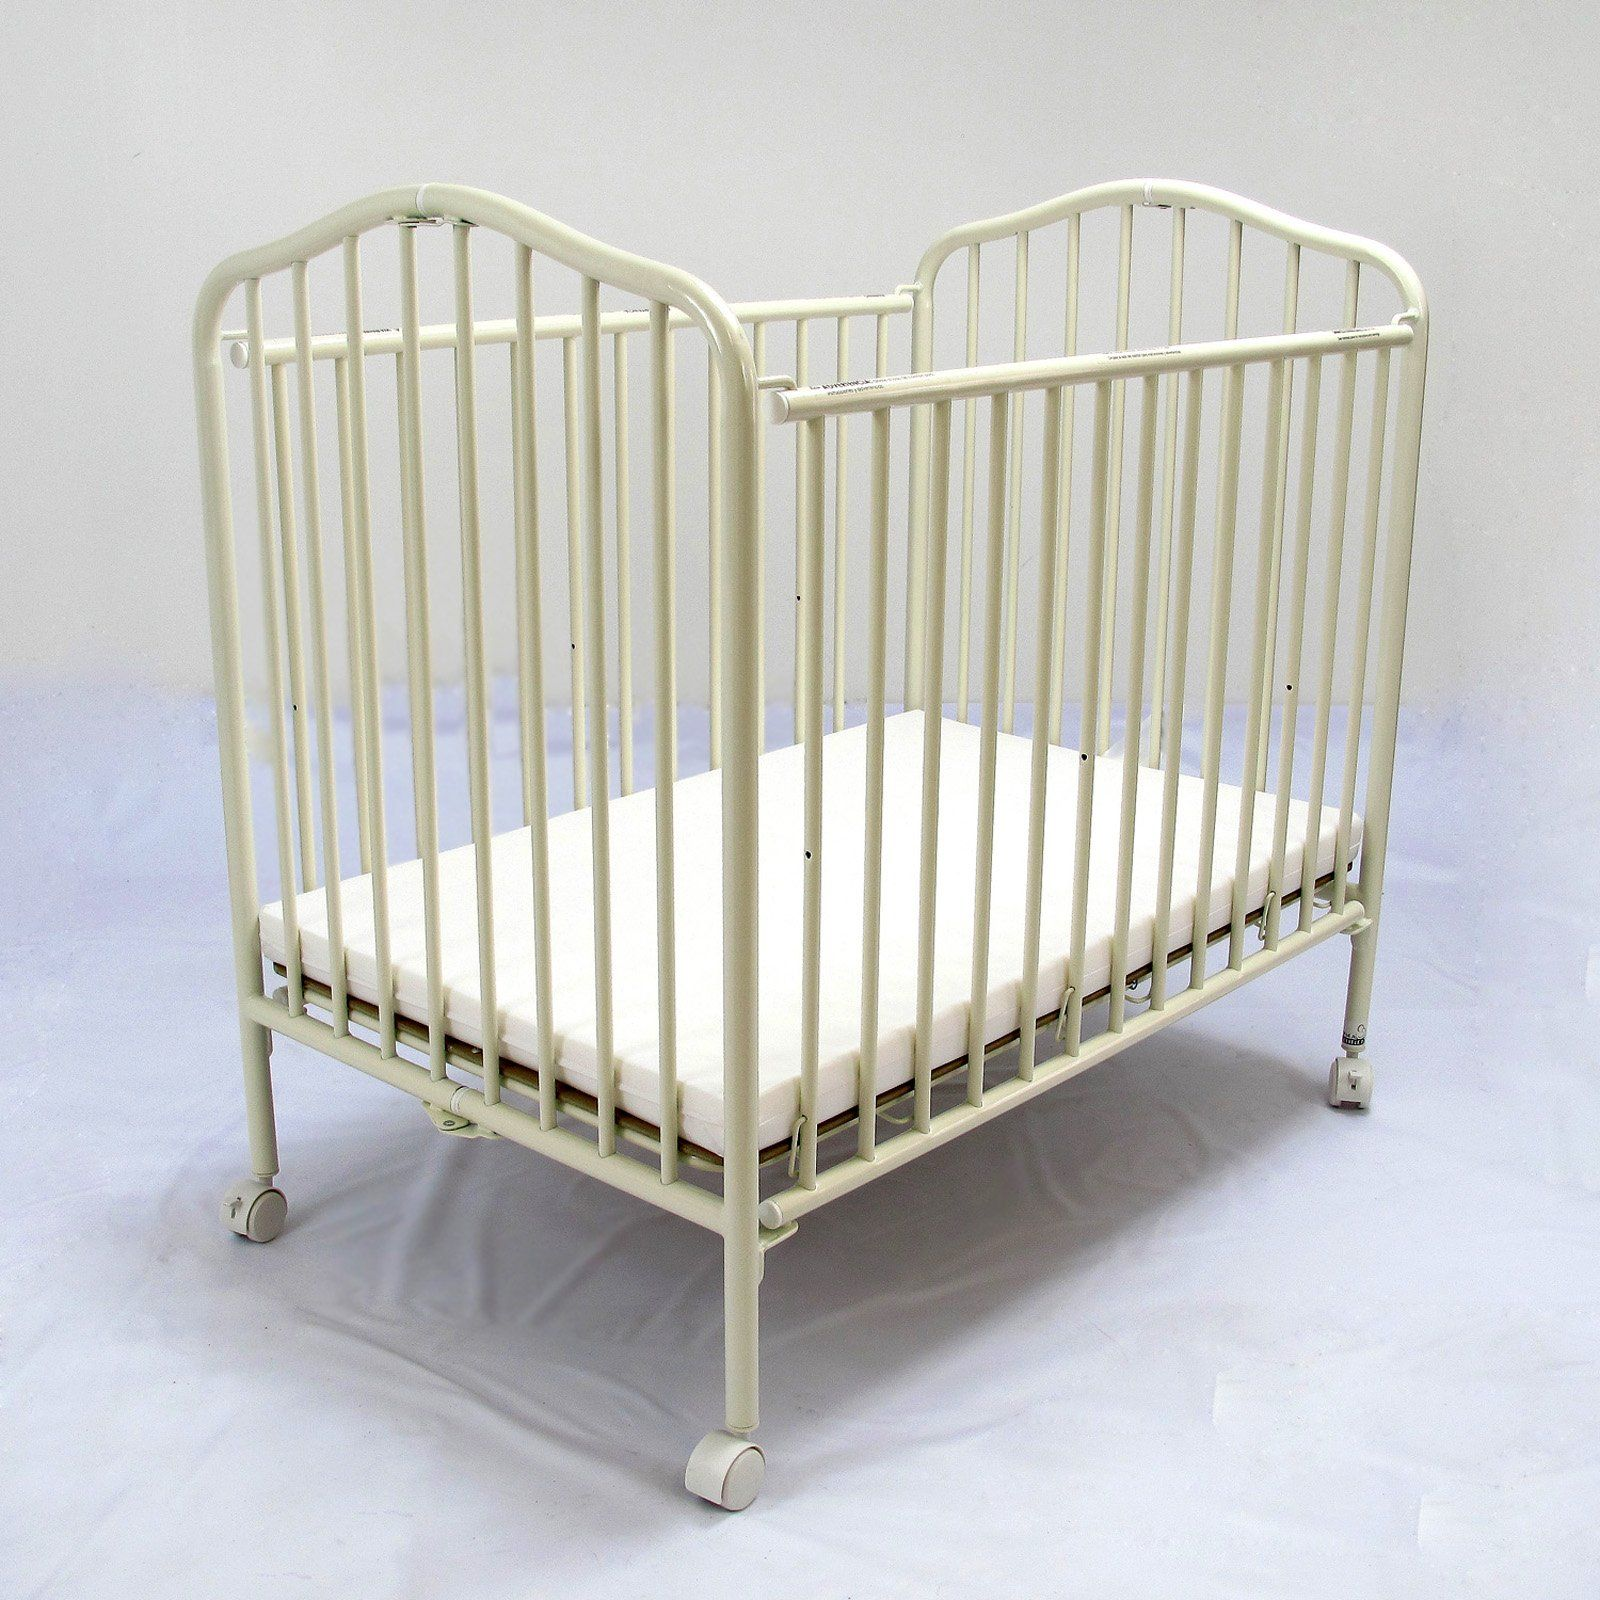 compact nursery furniture. LA Baby Compact Metal Folding Crib - Vanilla $178.99 (compare The Size With Other Nursery Furniture